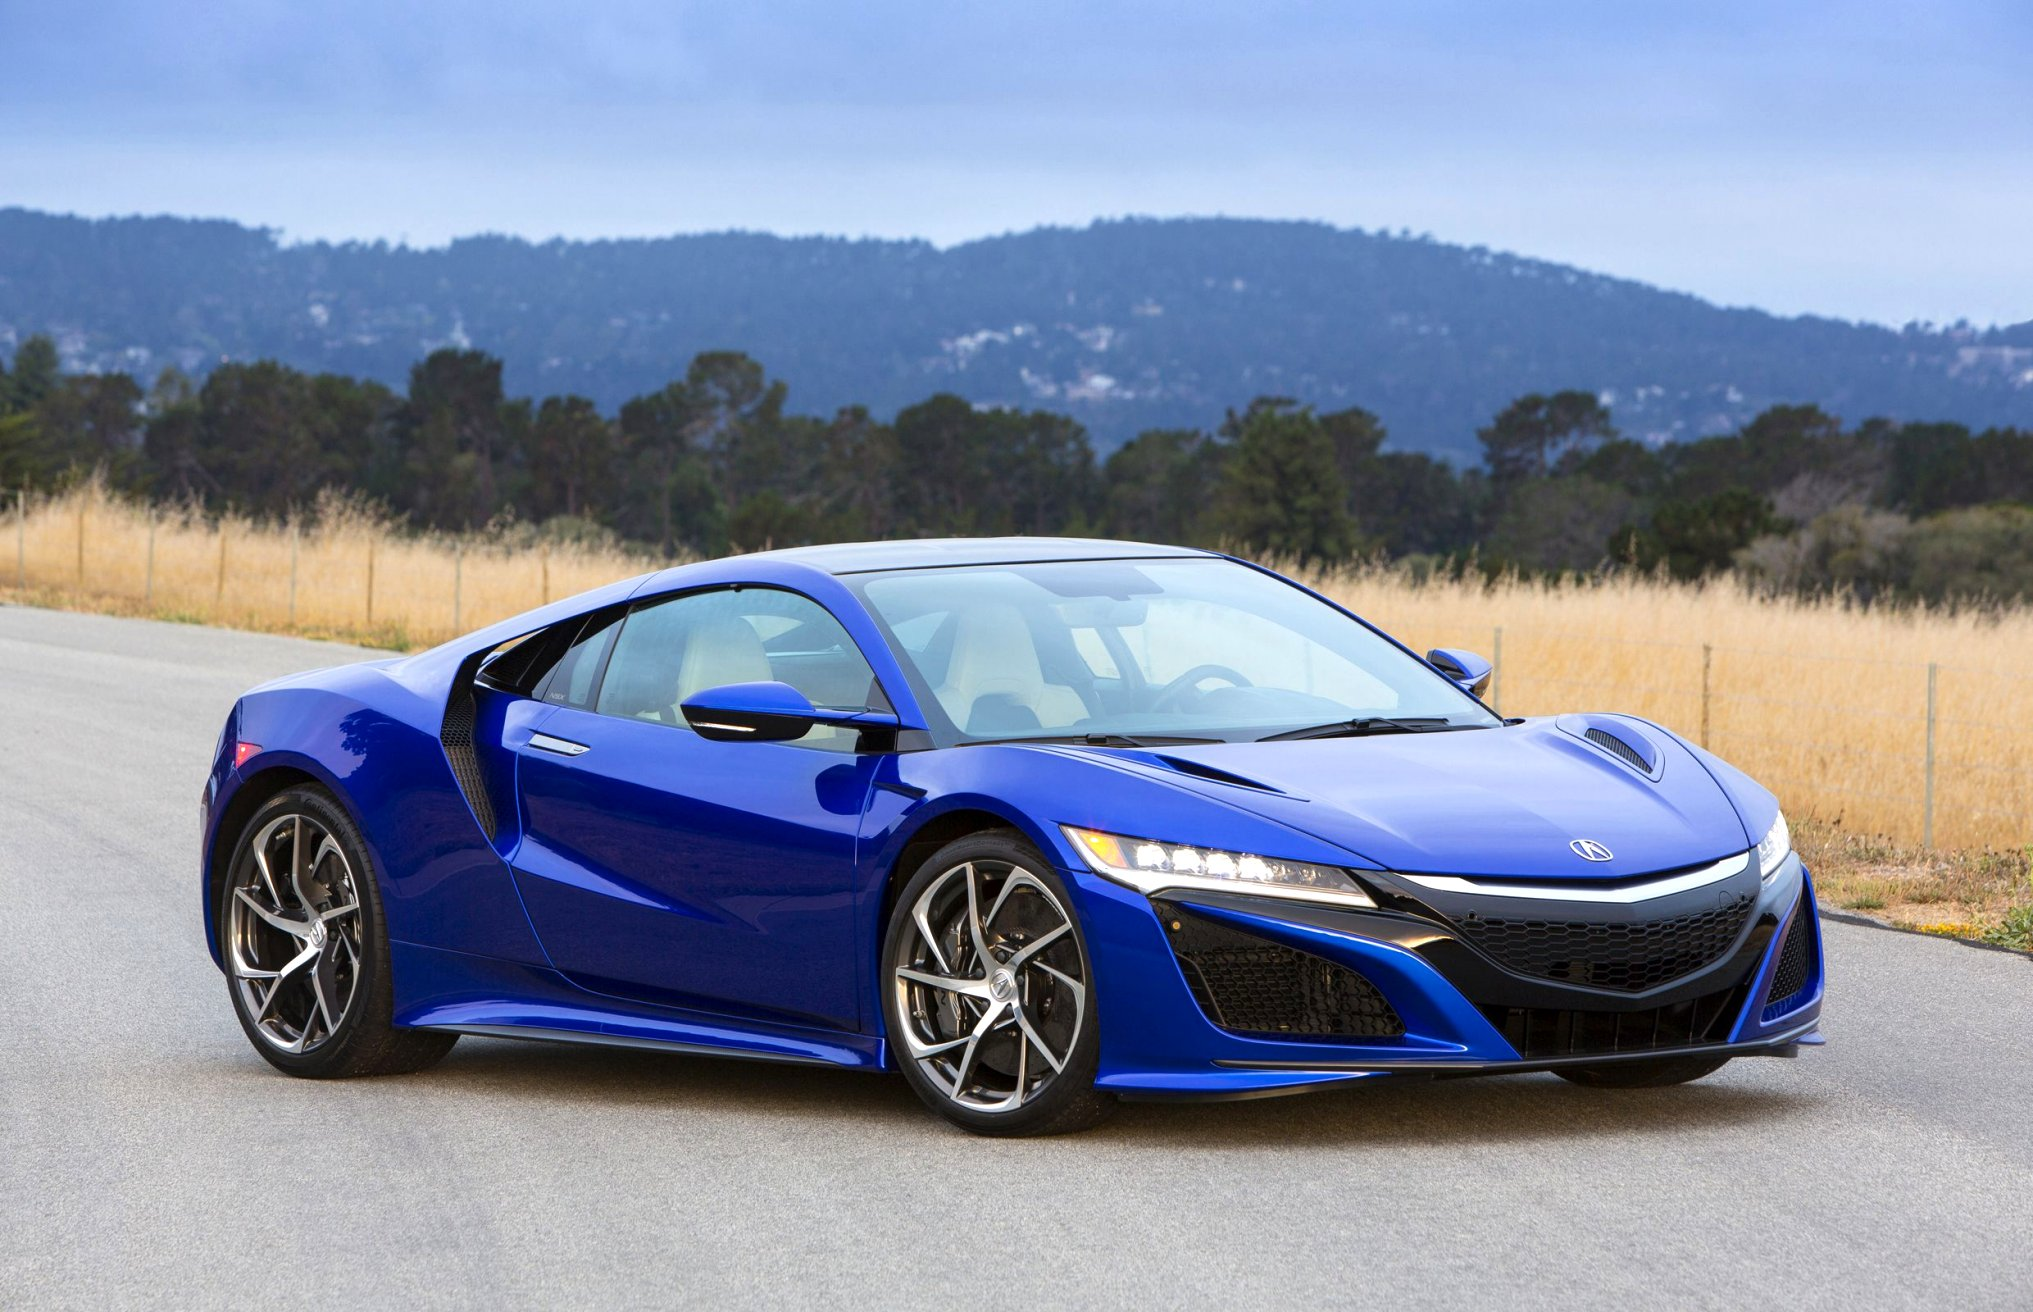 2020 honda nsx price New Review